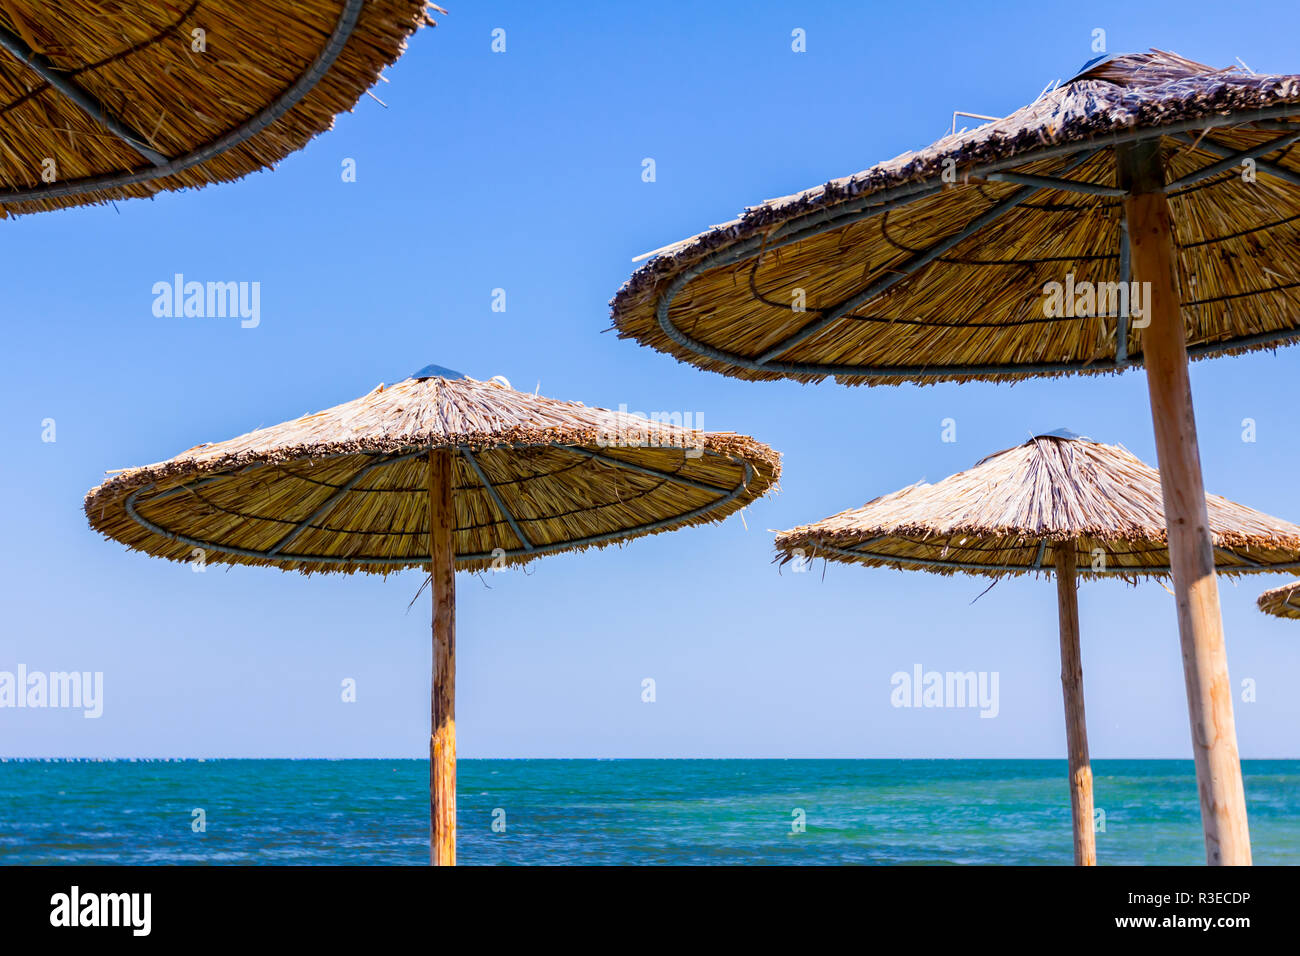 View On Blue Sea Below Thatched Beach Umbrella Over Blue Sky Sunshade Made With Wood And Reed On Seascape